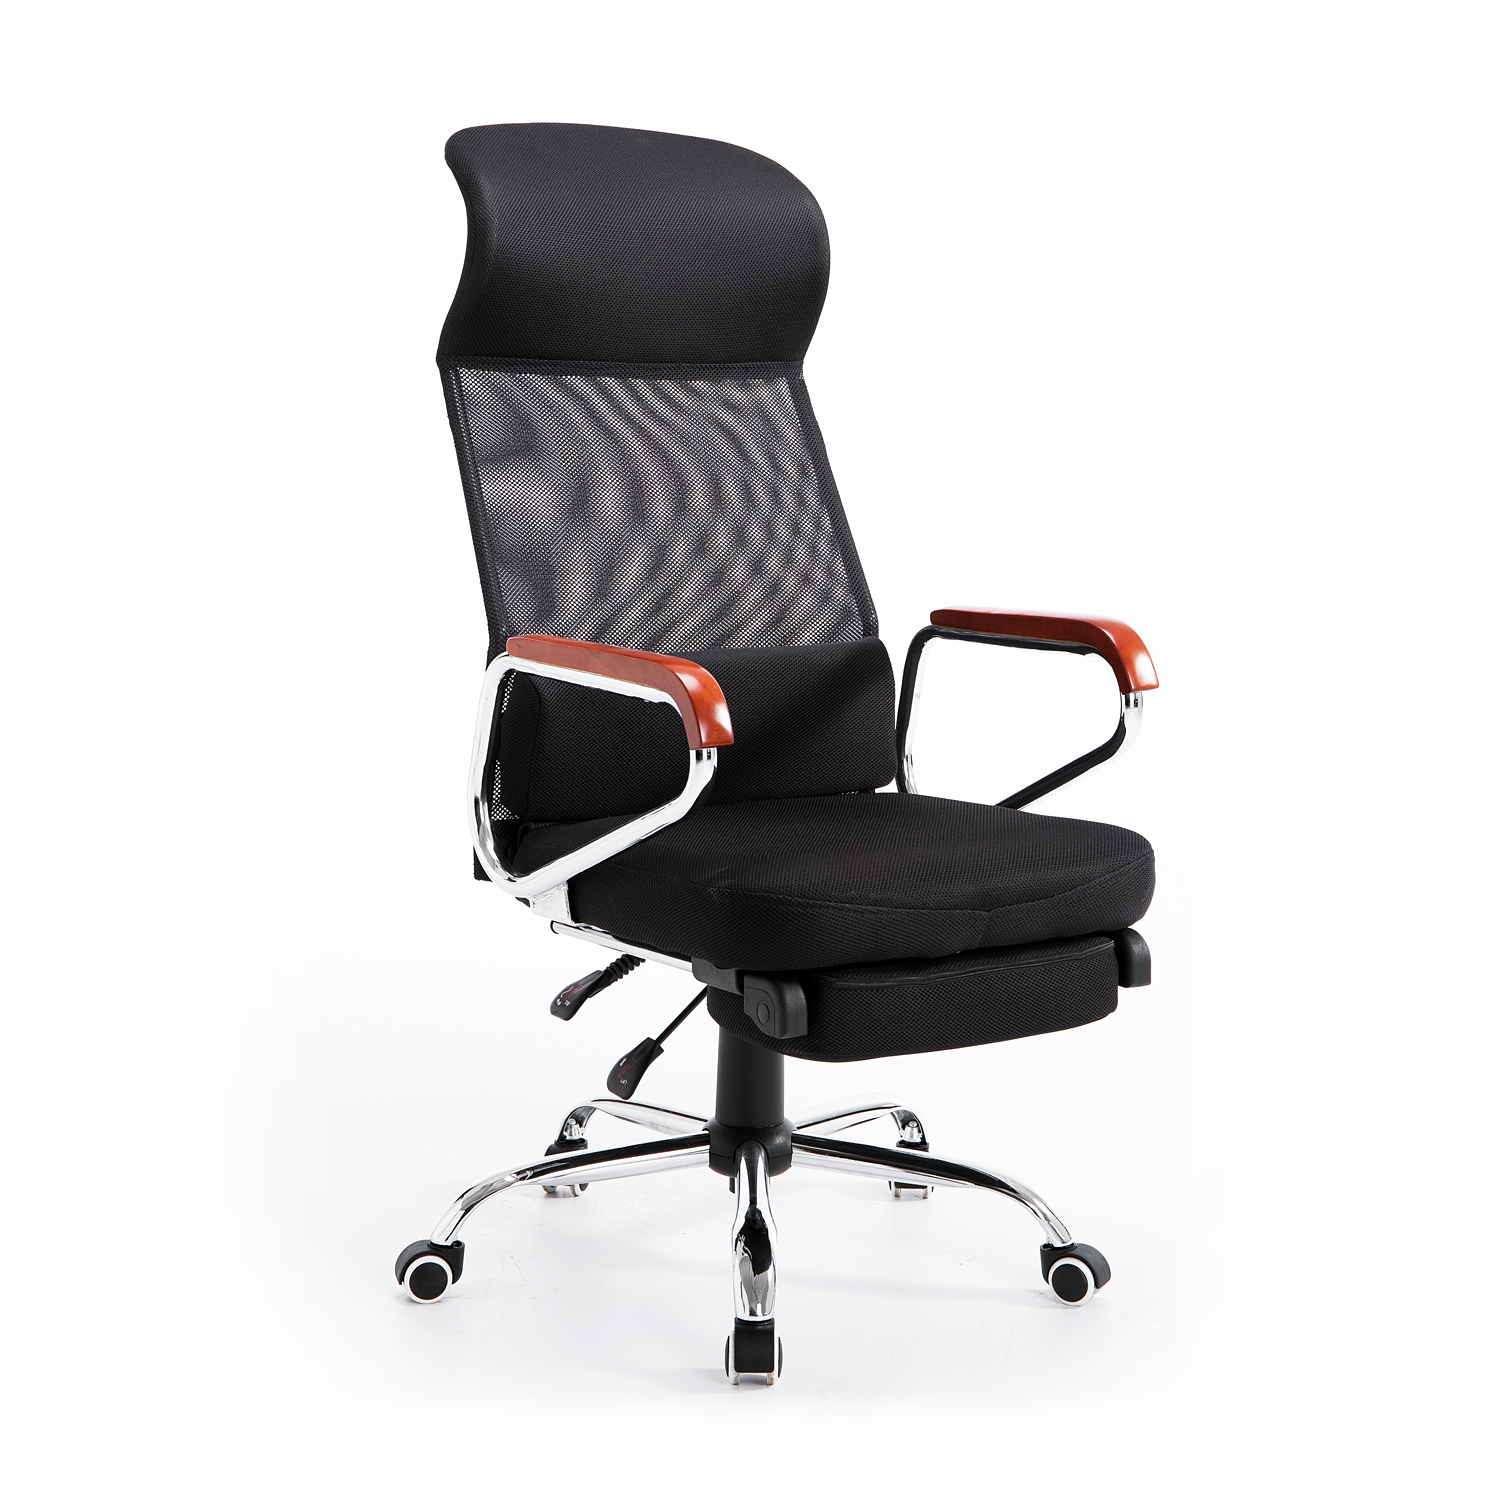 Hom Mesh High Back Reclining fice Chair with Foot Rest